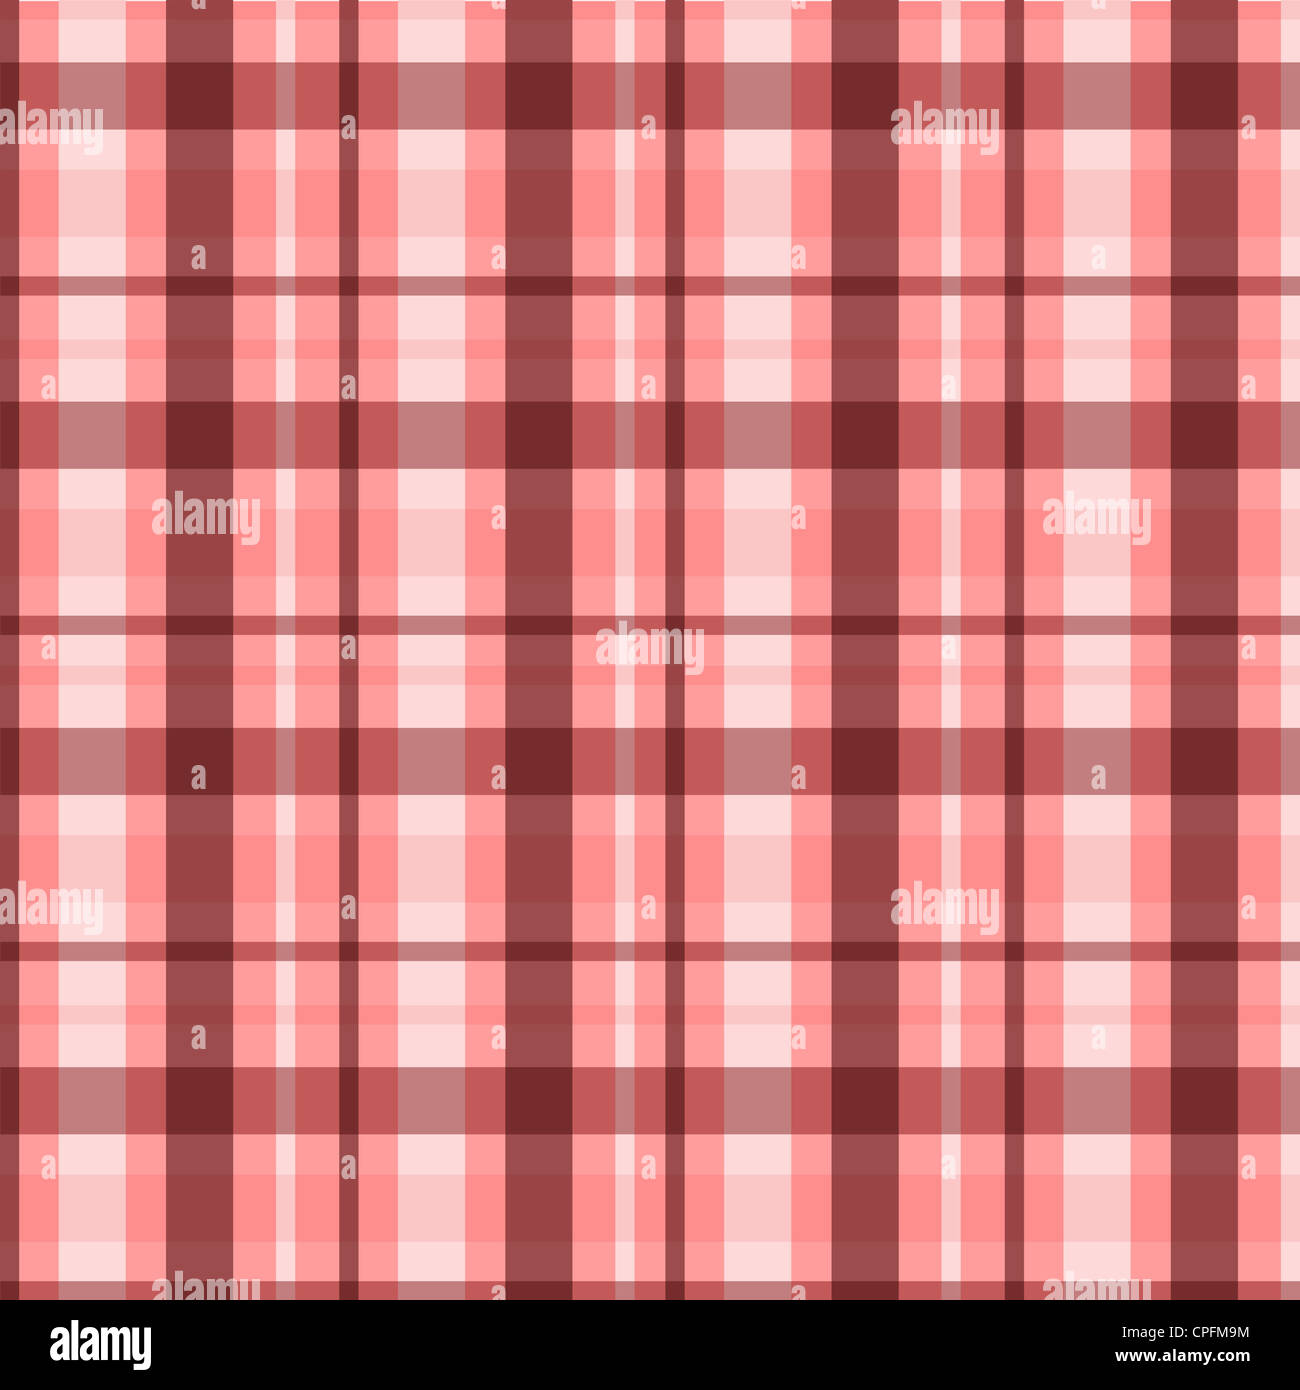 Plaid pattern in brown and pink colors Stock Photo